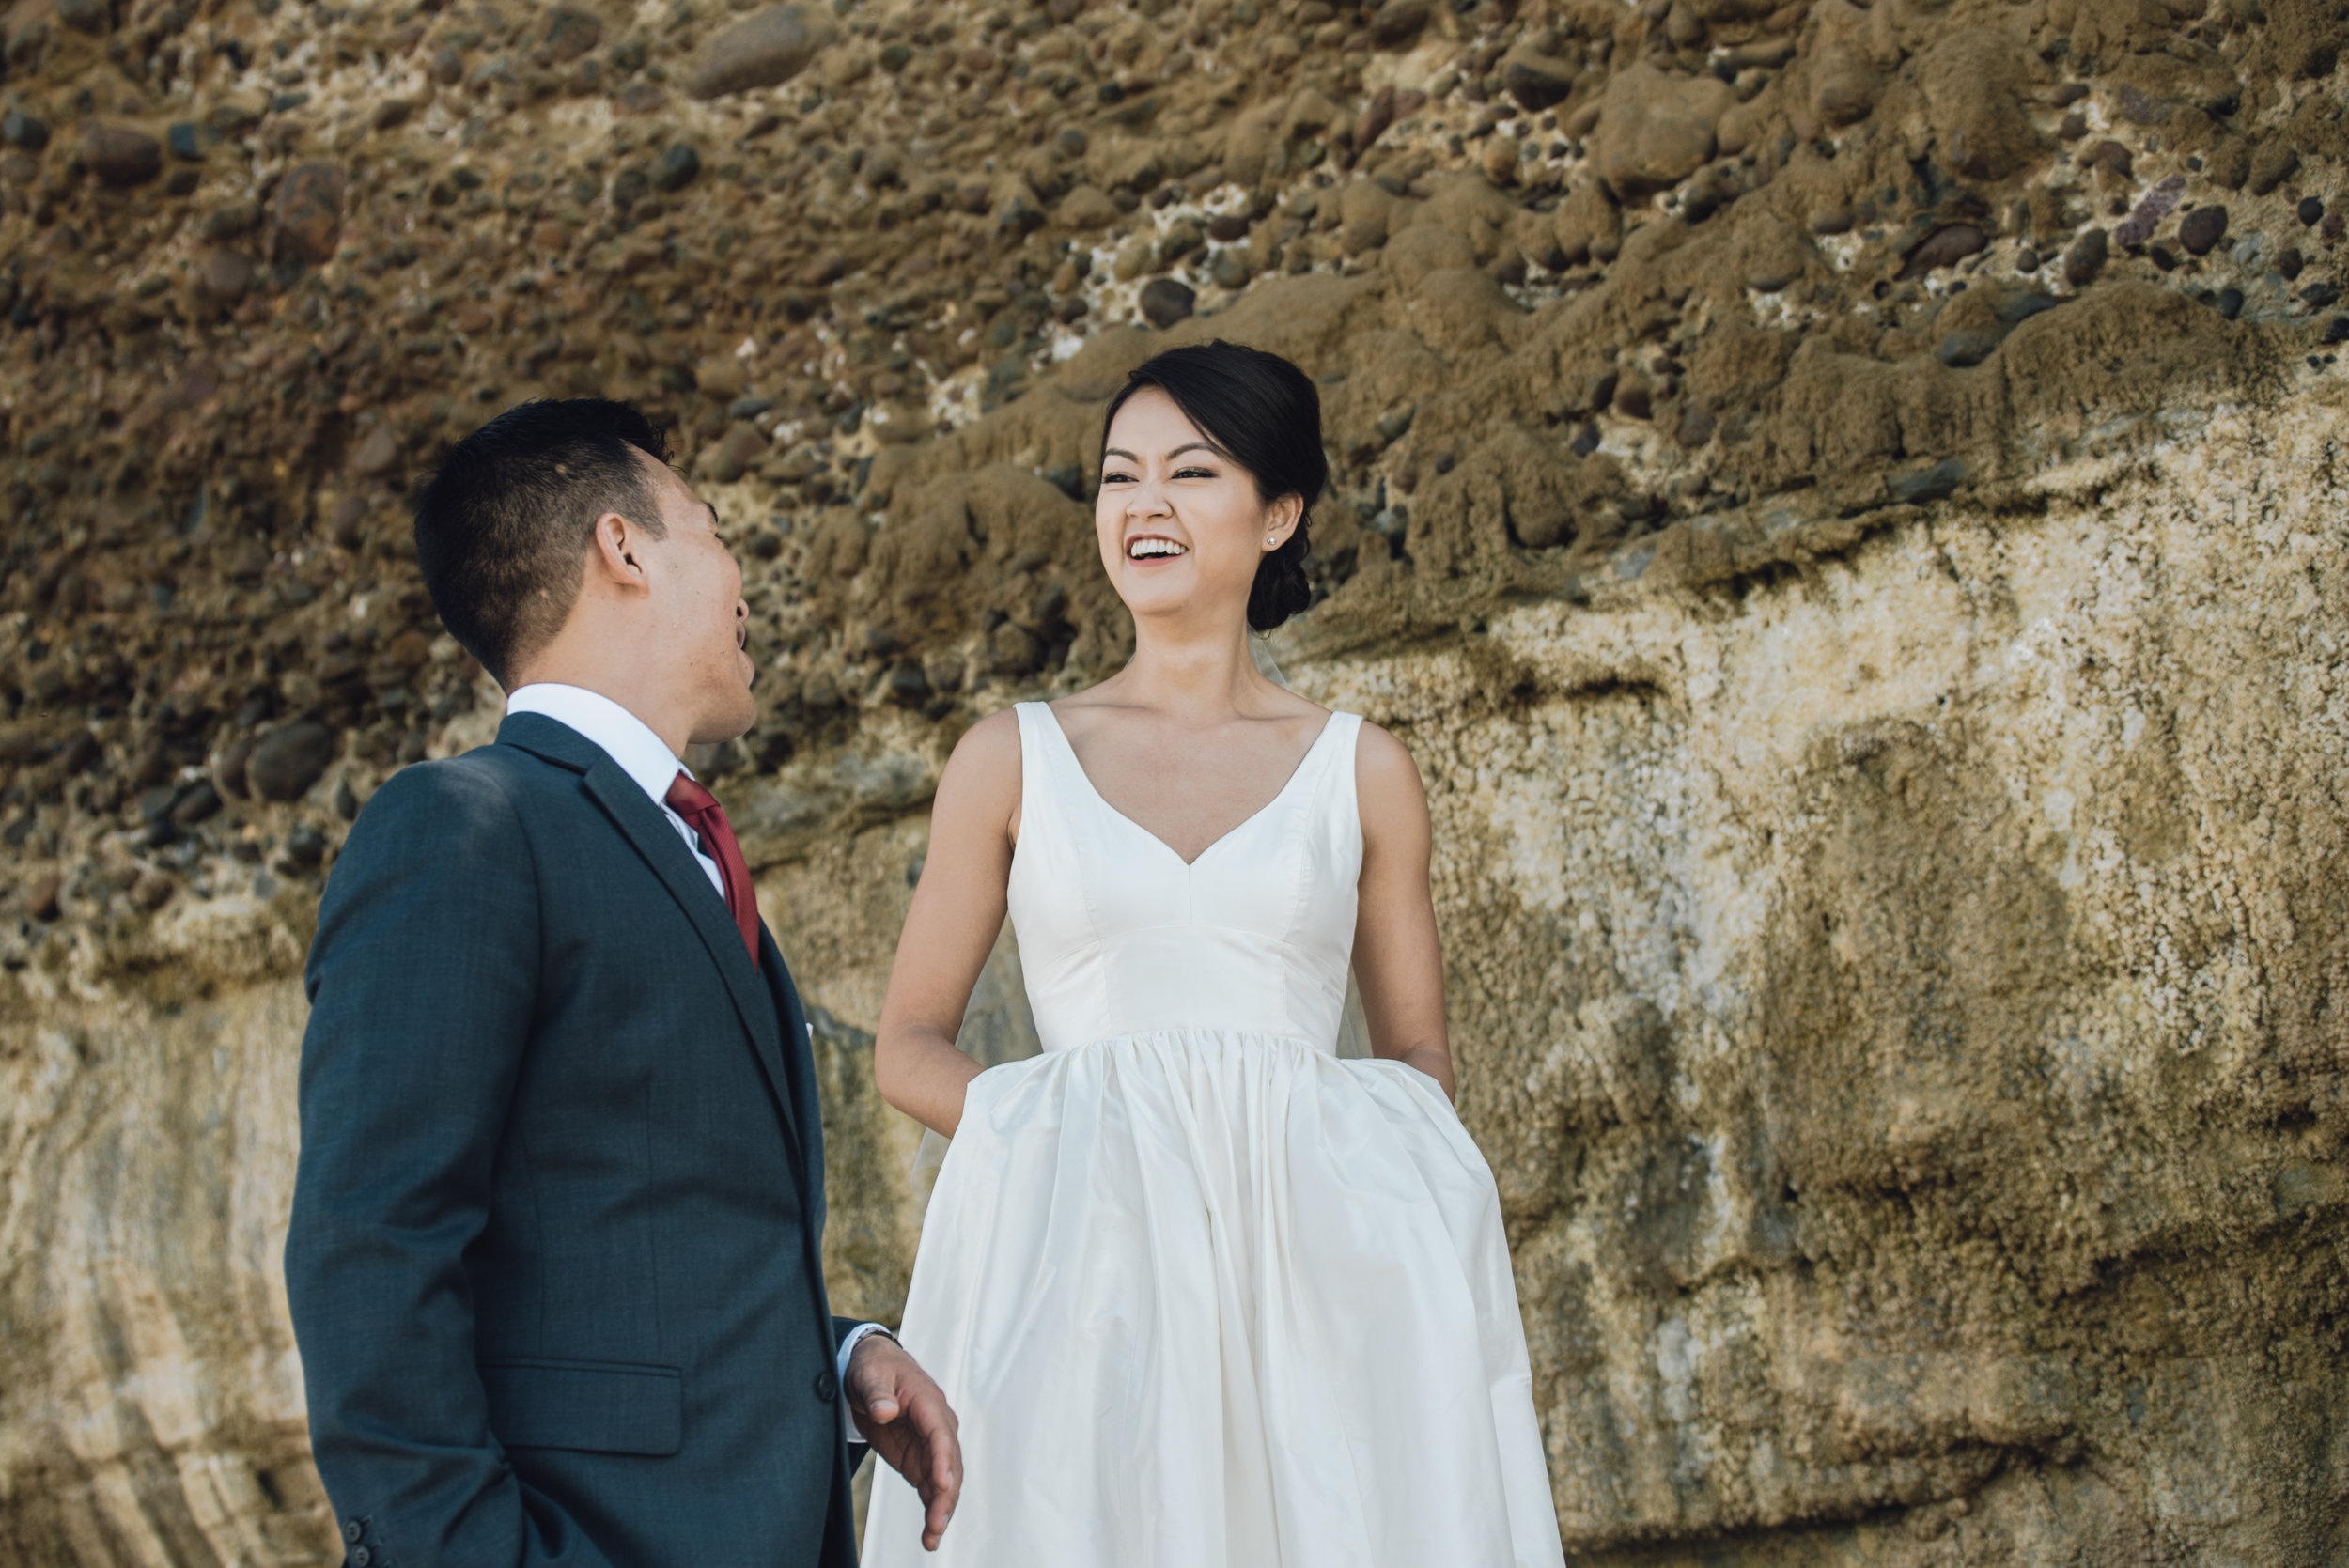 Main and Simple Photography_2017_Weddings_SanDiego_T+E-560.jpg